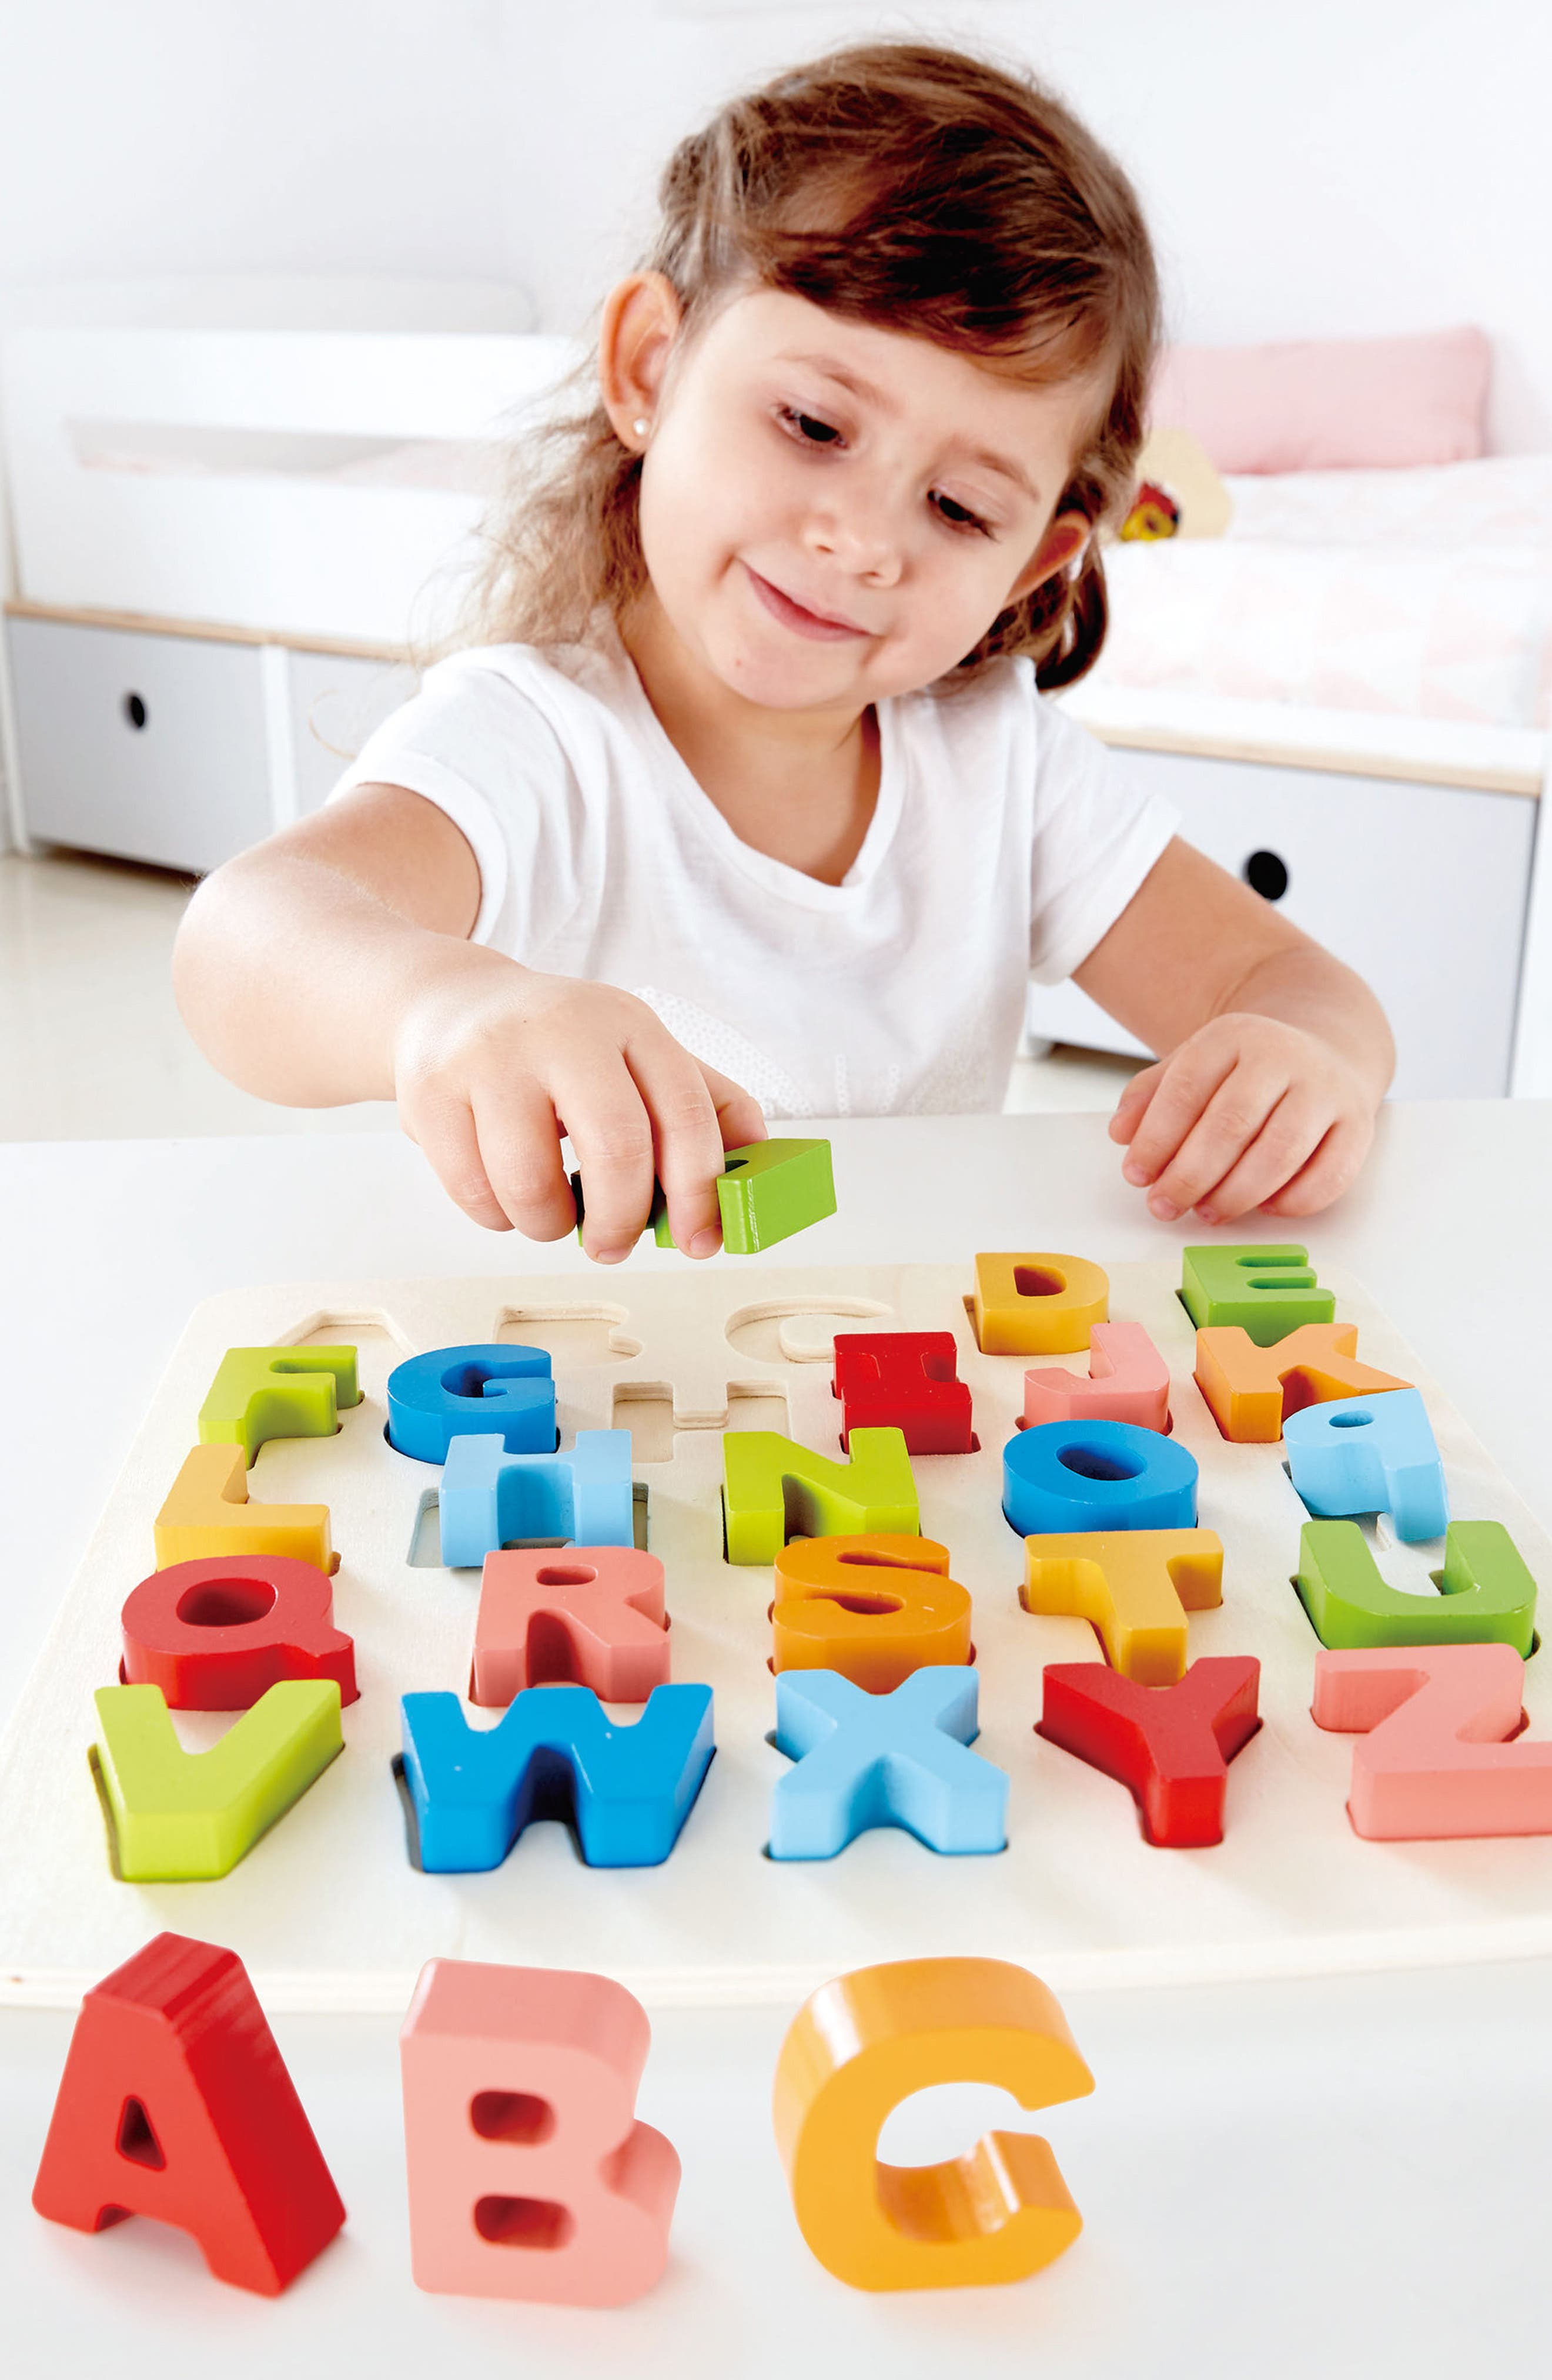 27-Piece Chunky Capital Letters Puzzle,                             Alternate thumbnail 4, color,                             800